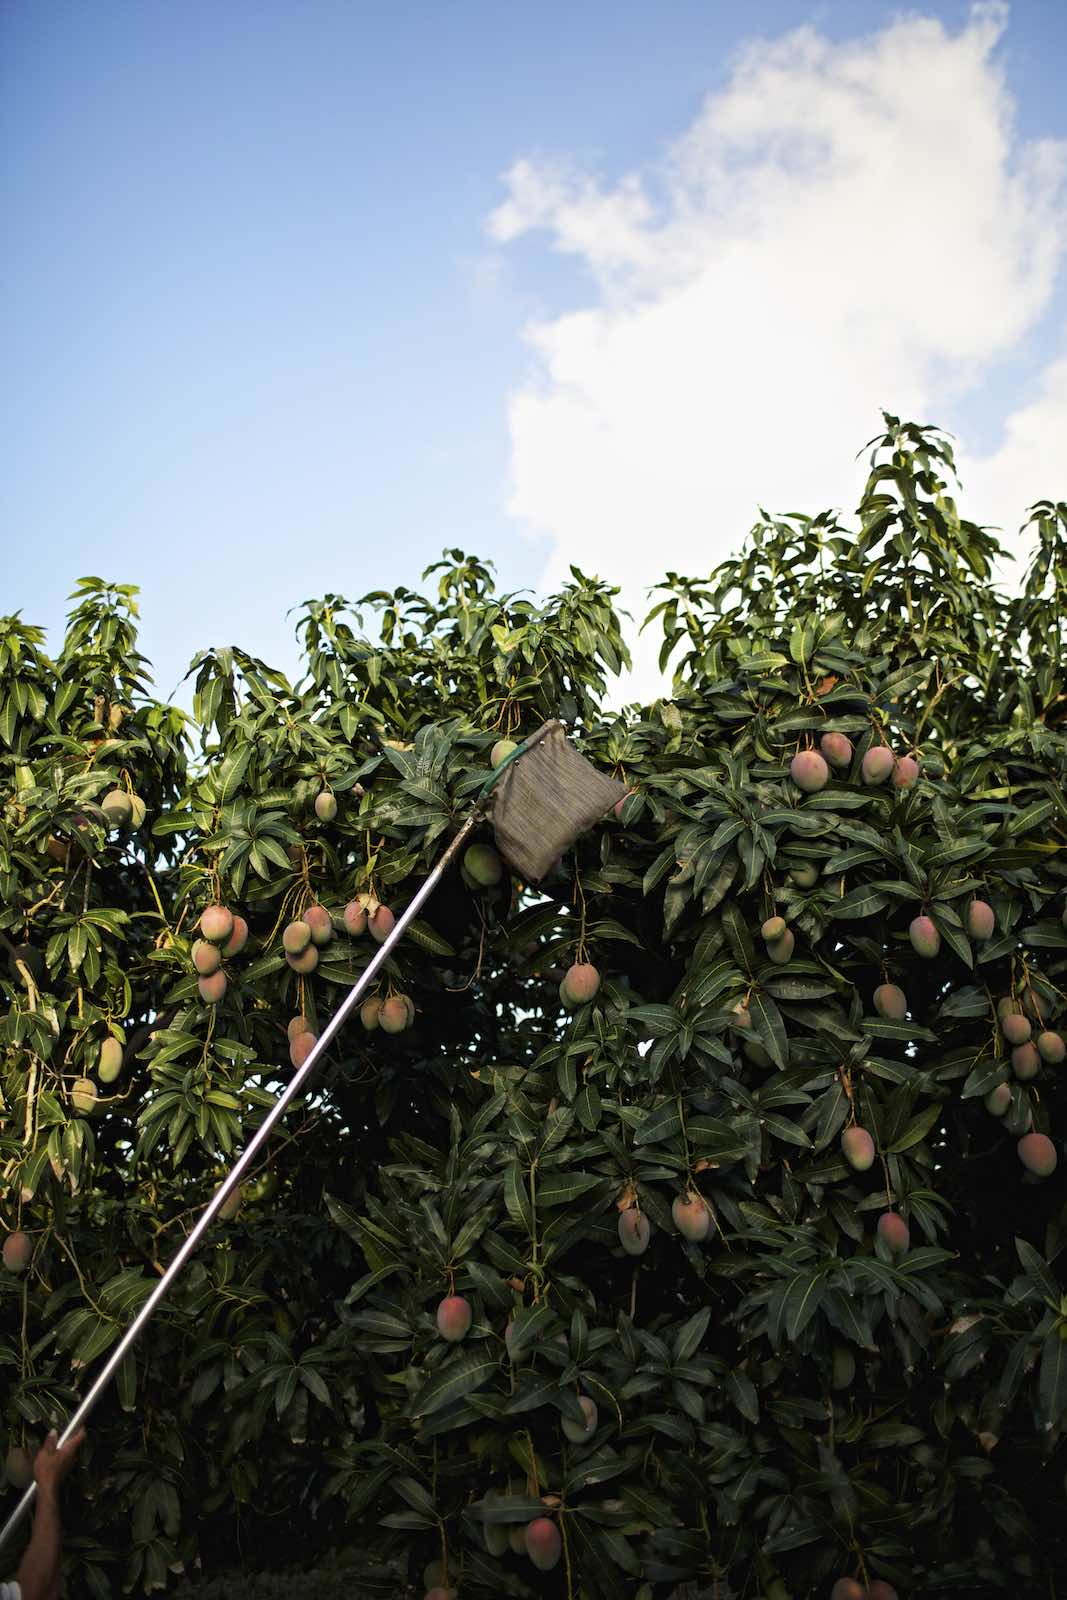 Jody Horton Photography - Mangos being picked for harvest.